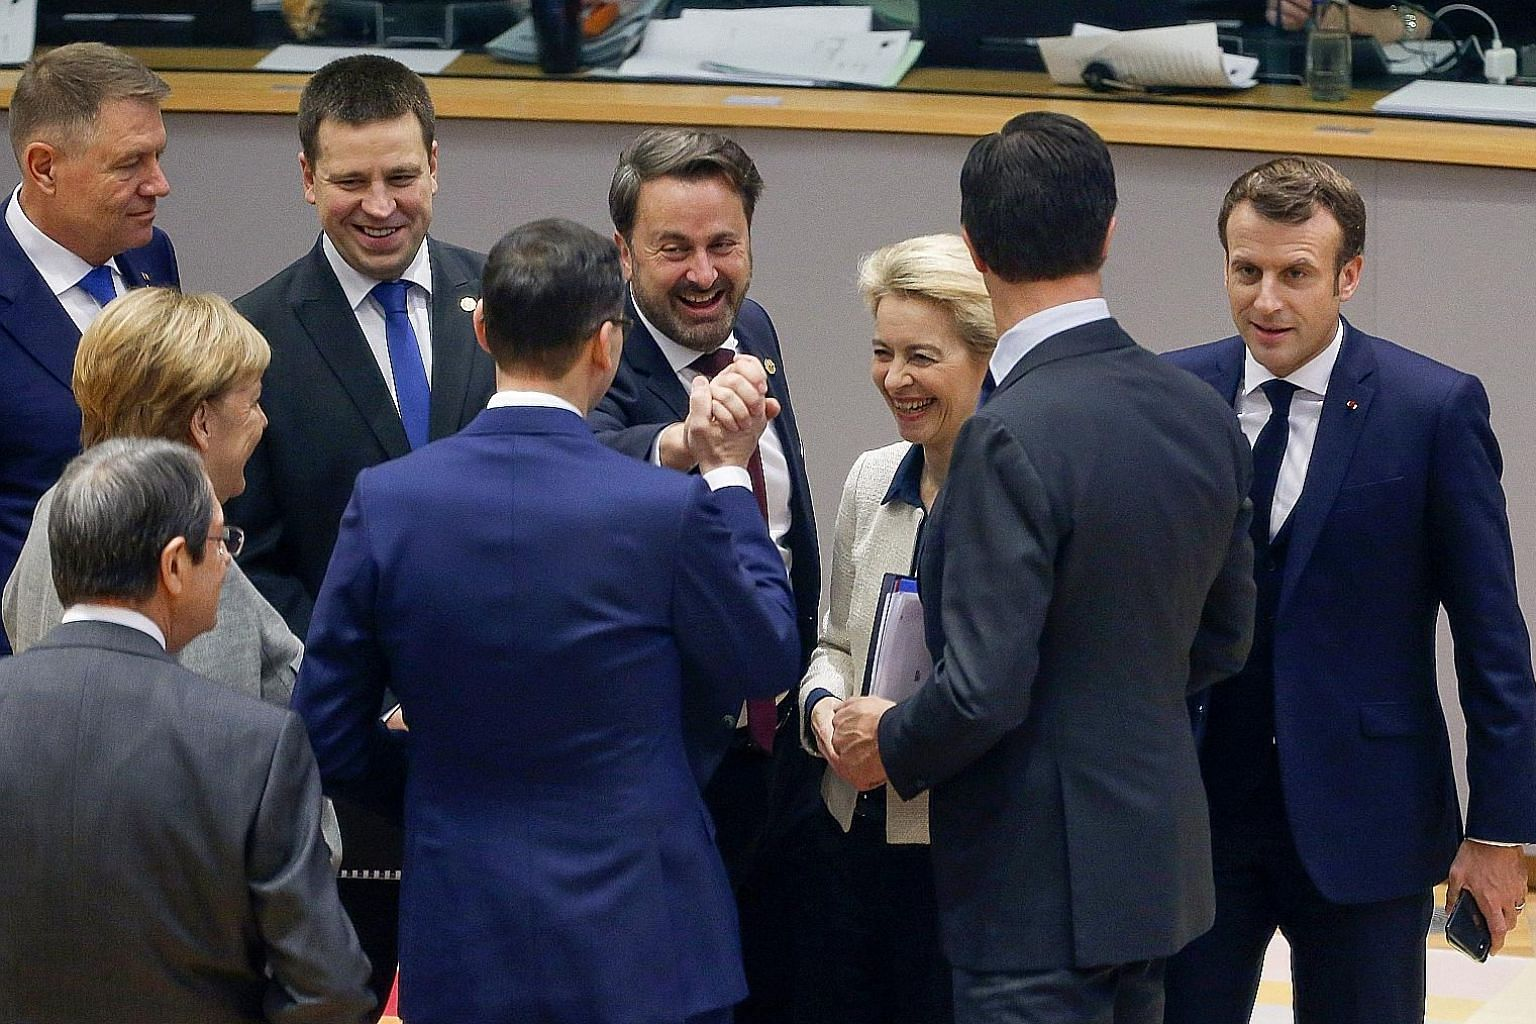 European Union leaders meeting at an EU summit in Brussels yesterday. They welcomed British Prime Minister Boris Johnson's election win in Britain, saying it would end months of political gridlock over Brexit. German Chancellor Angela Merkel said Mr